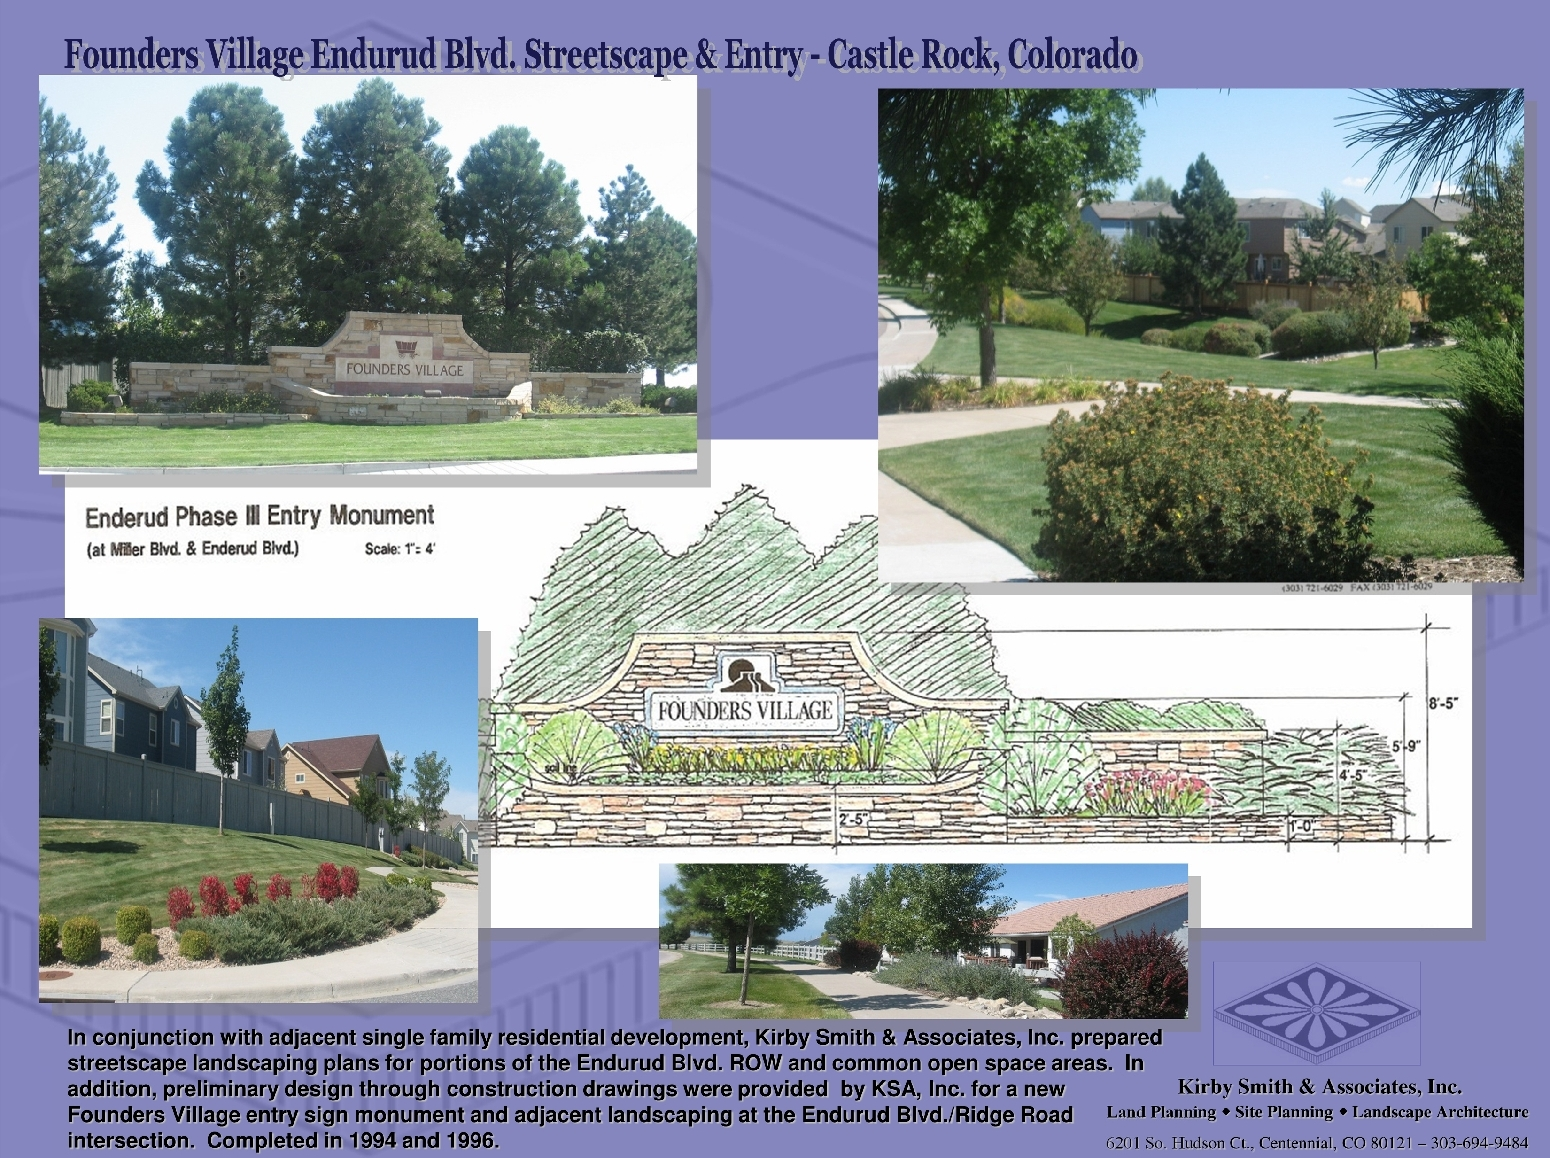 In conjunction with adjacent single family residential development, Kirby Smith & Associates, Inc. prepared streetscape landscaping plans for portions of the Endurud Blvd. ROW and common open space areas.  In addition, preliminary design through construction drawings were provided  by KSA, Inc. for a new            Founders Village entry sign monument and adjacent landscaping at the Endurud Blvd./Ridge Road               intersection.